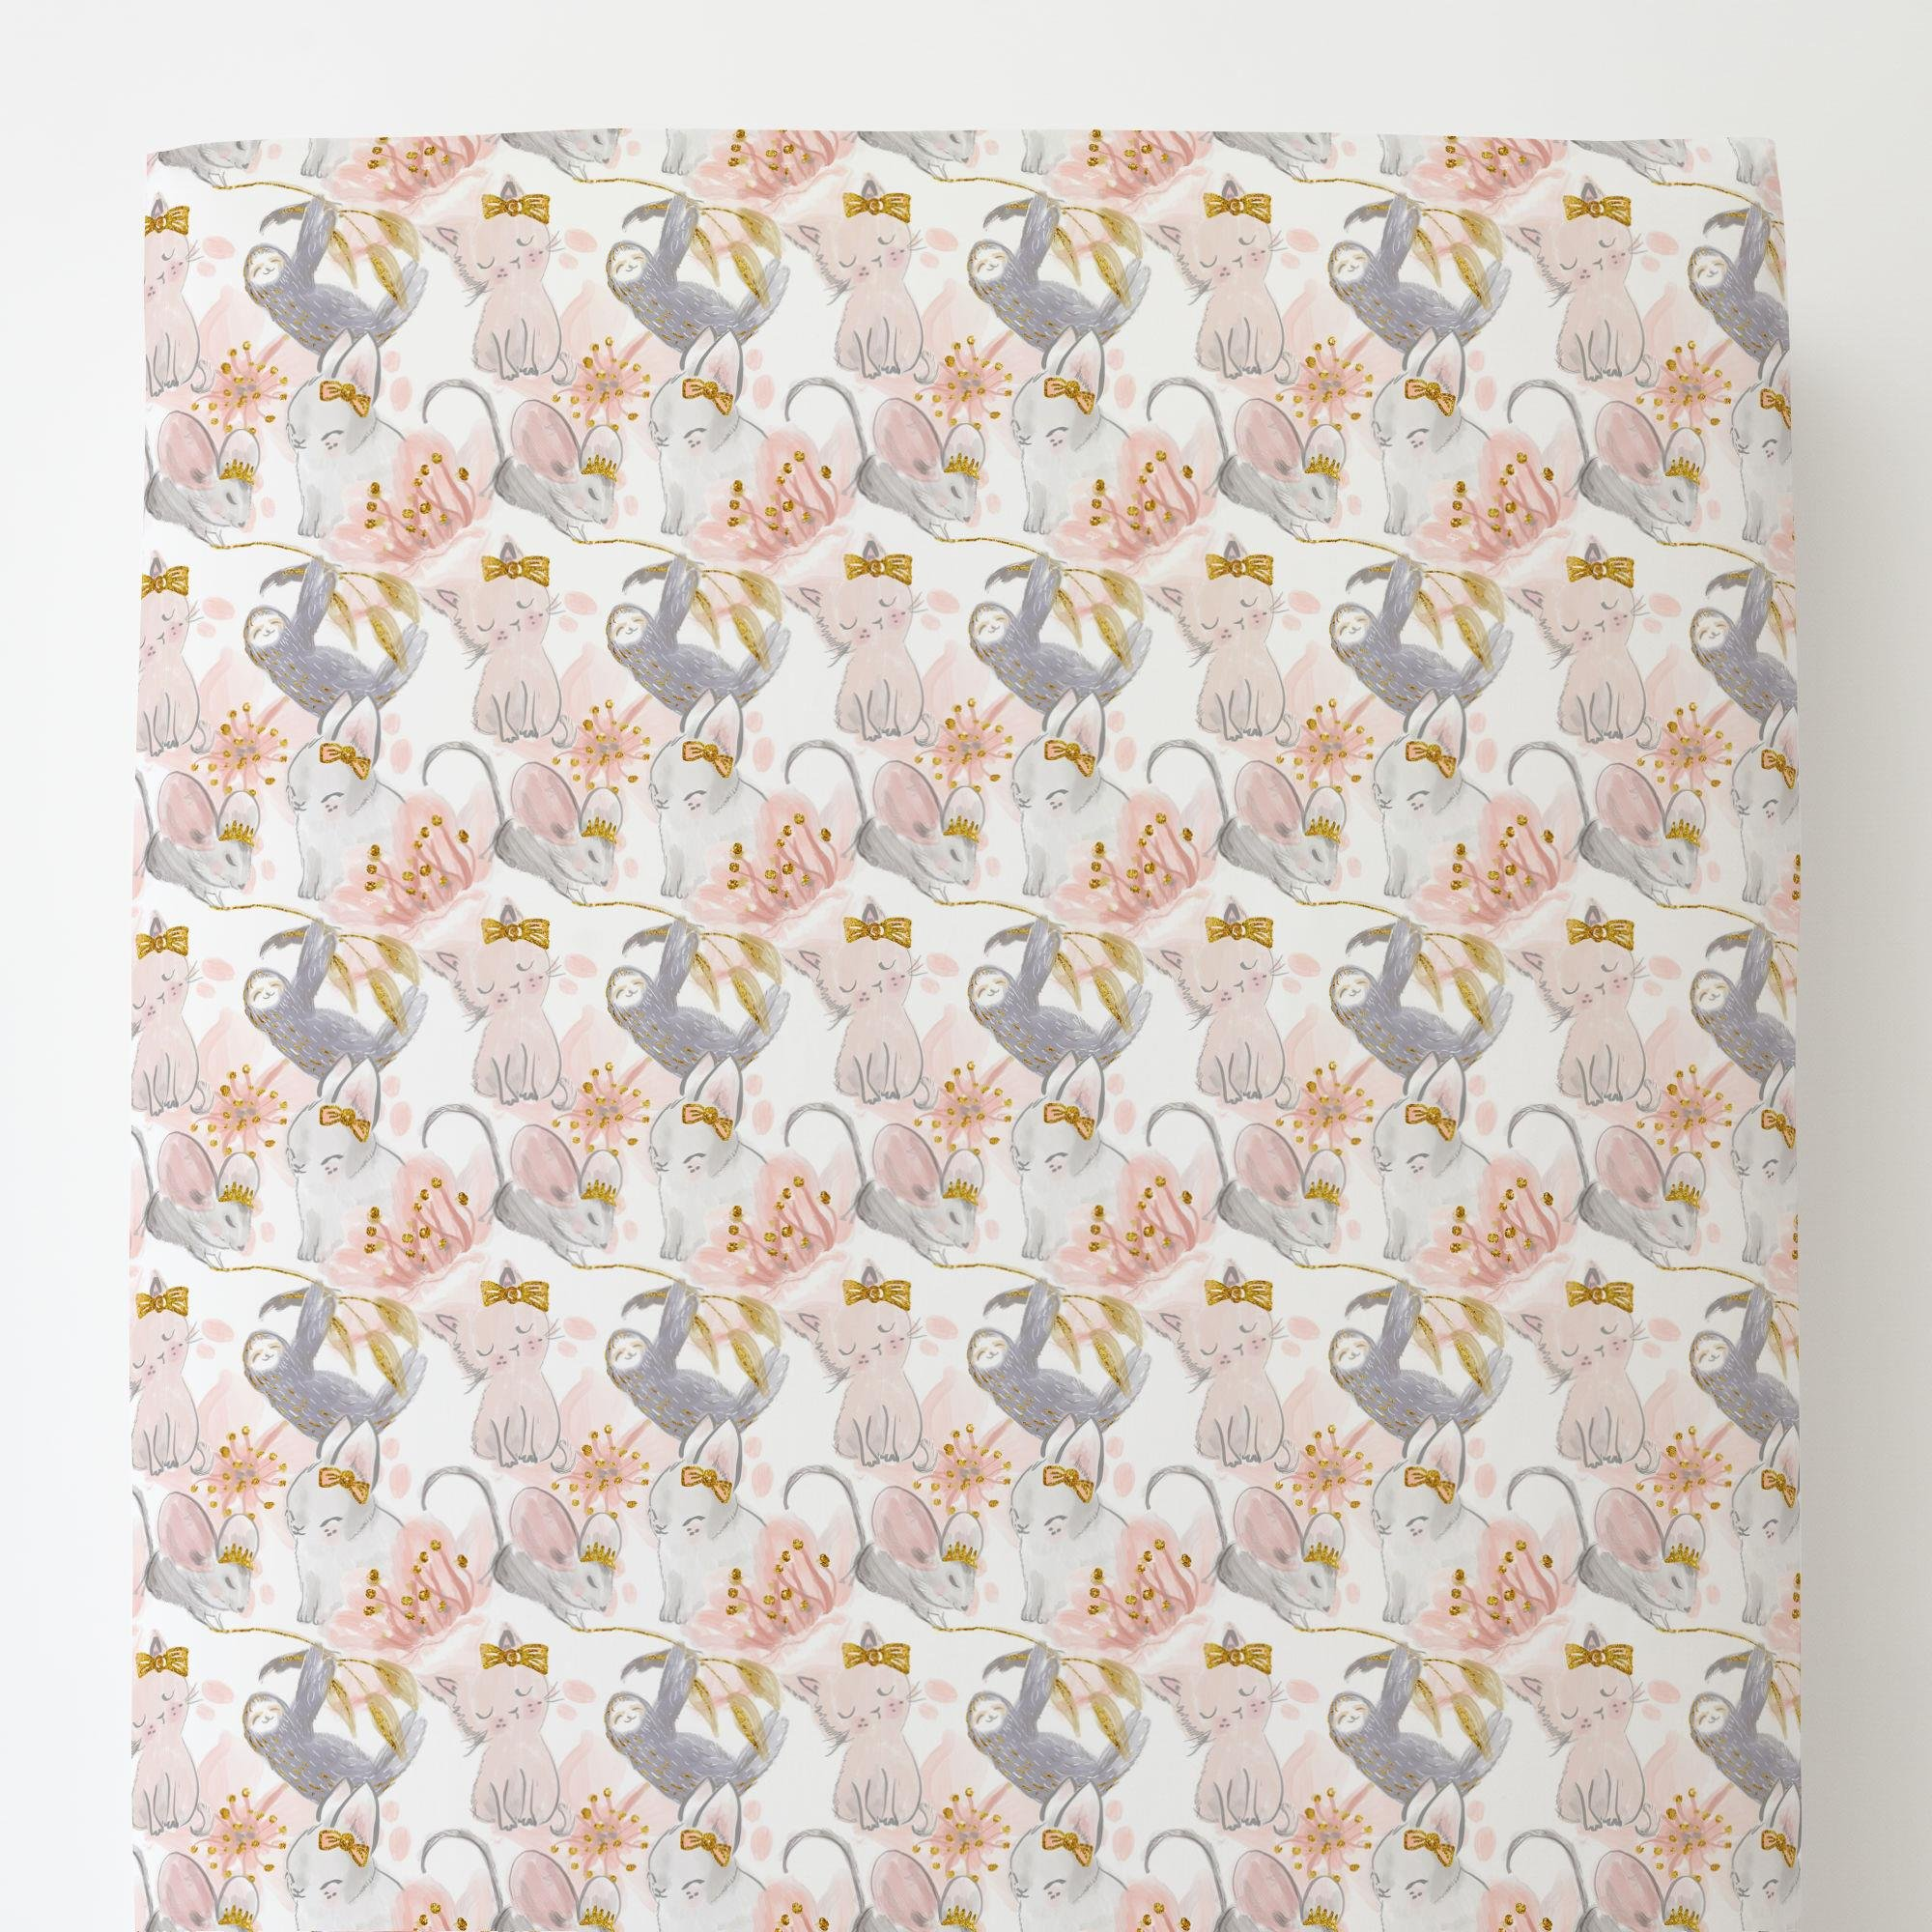 Carousel Designs Pink and Gray Sloth Toddler Bed Sheet Fitted